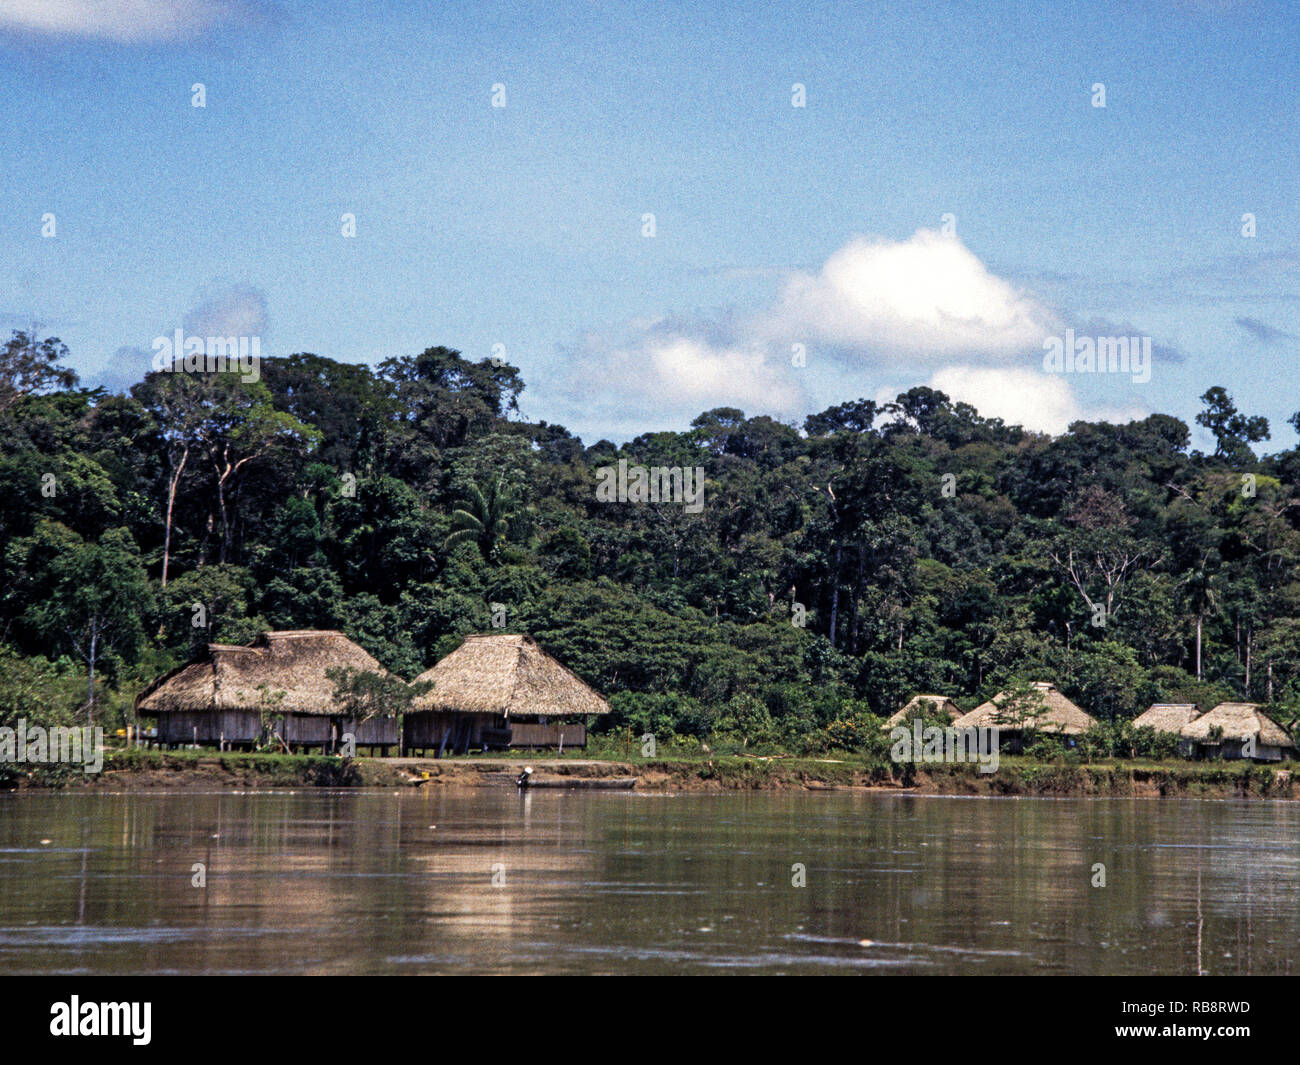 Ecuador.A South American Indian village on the bank of the River Napo. The Napo is a tributary of the River Amazon. - Stock Image